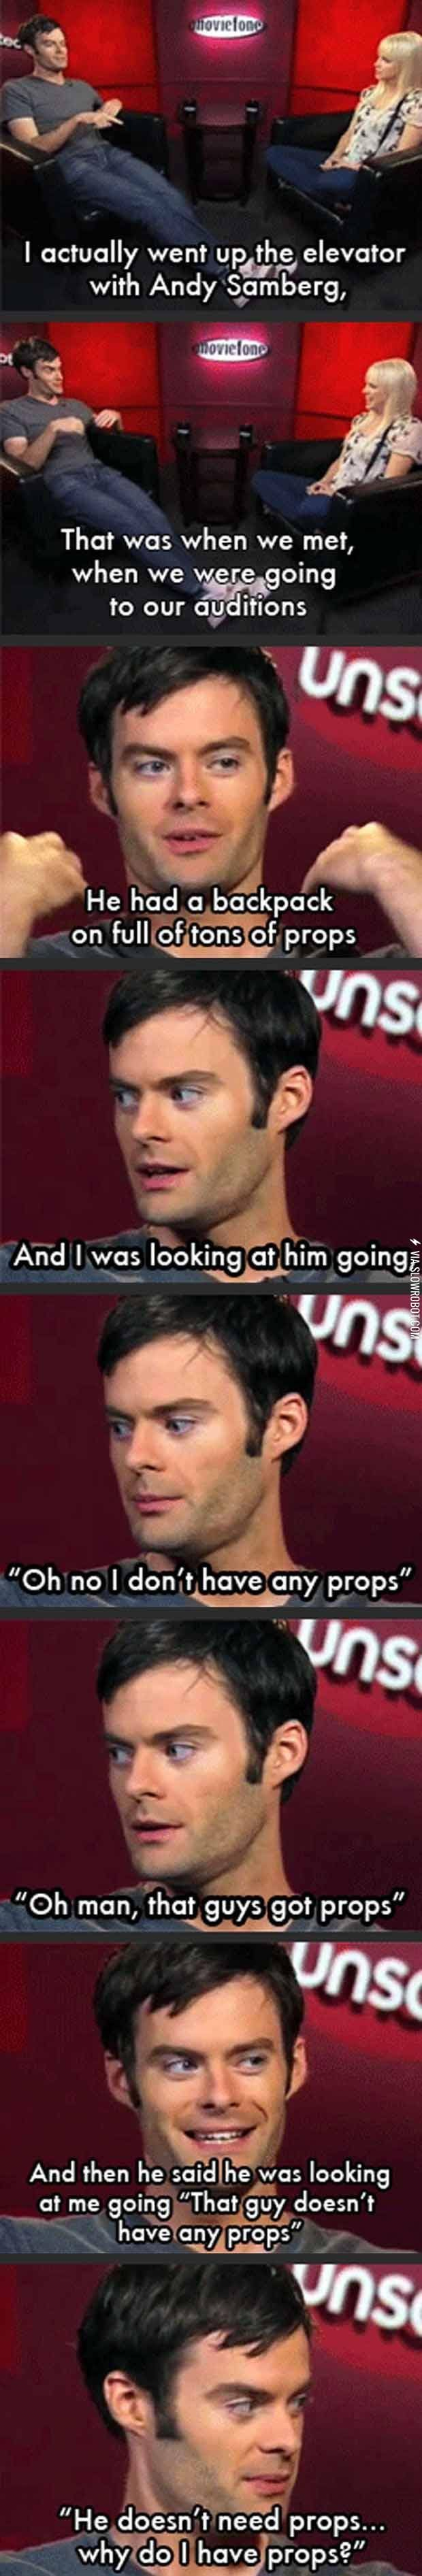 We're all either Bill Hader or Andy Samberg.